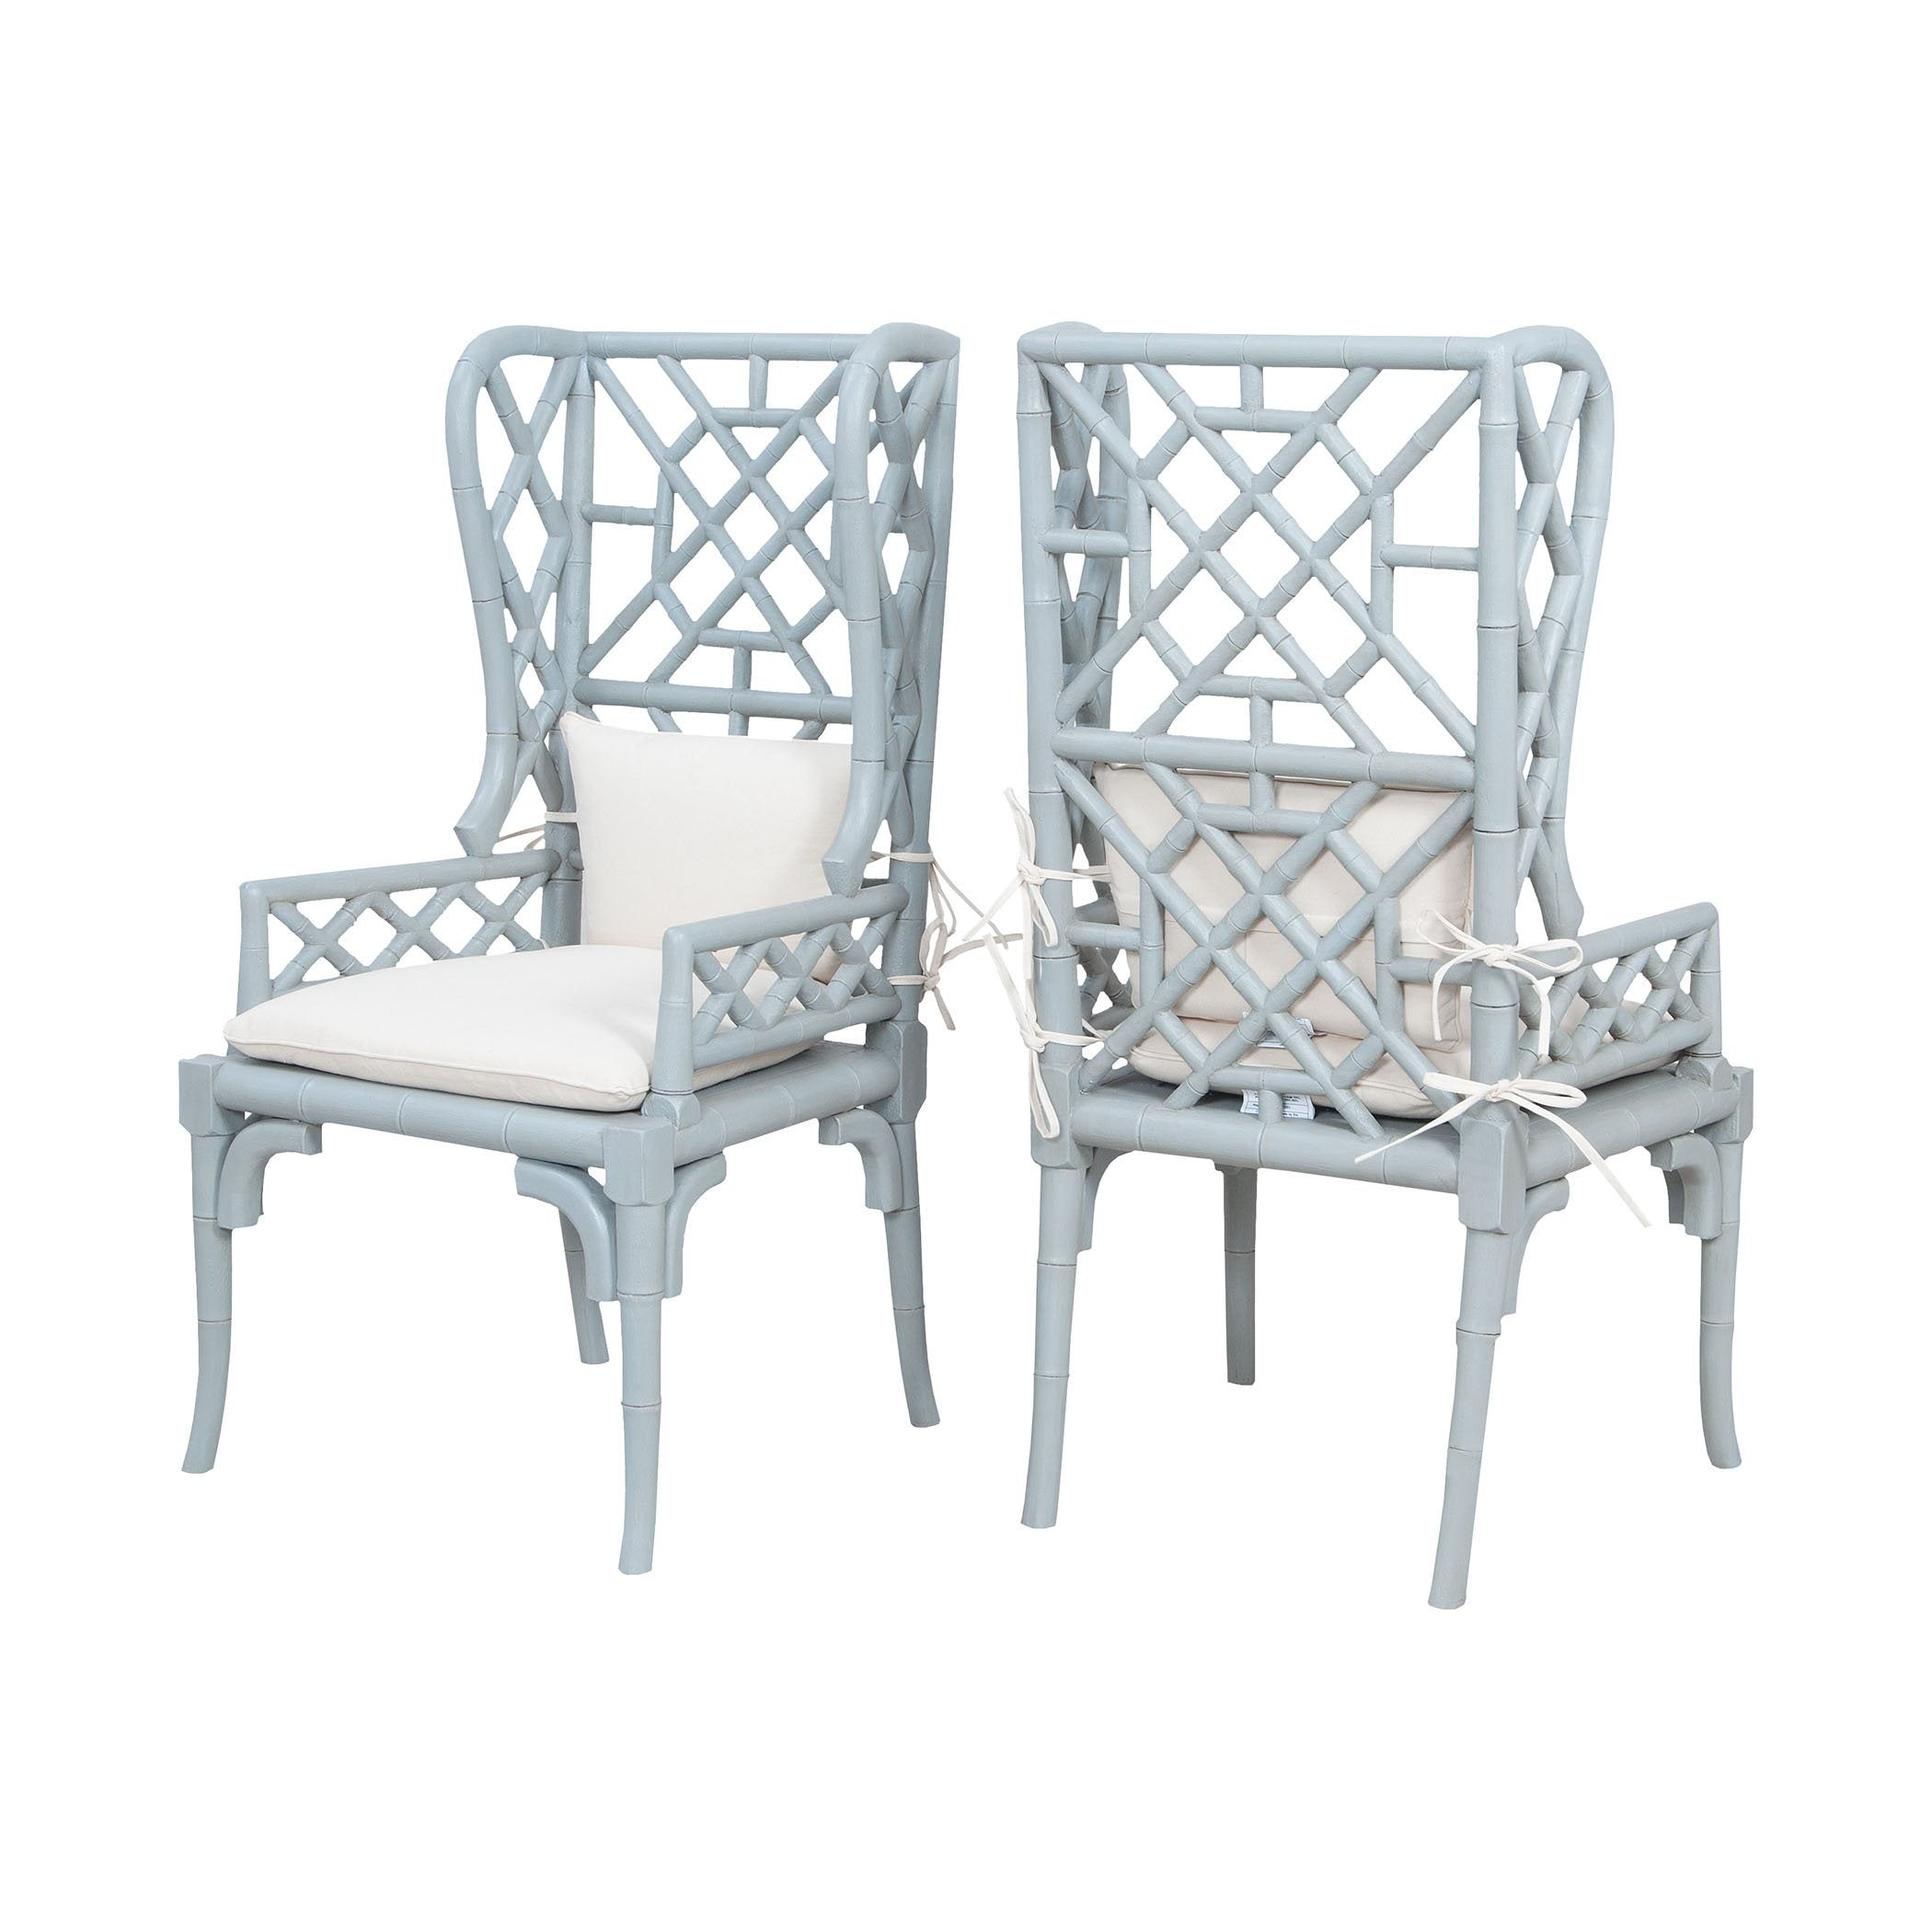 Bamboo Wing Back Chairs In Manor Slate - Set of 2 Furniture GuildMaster